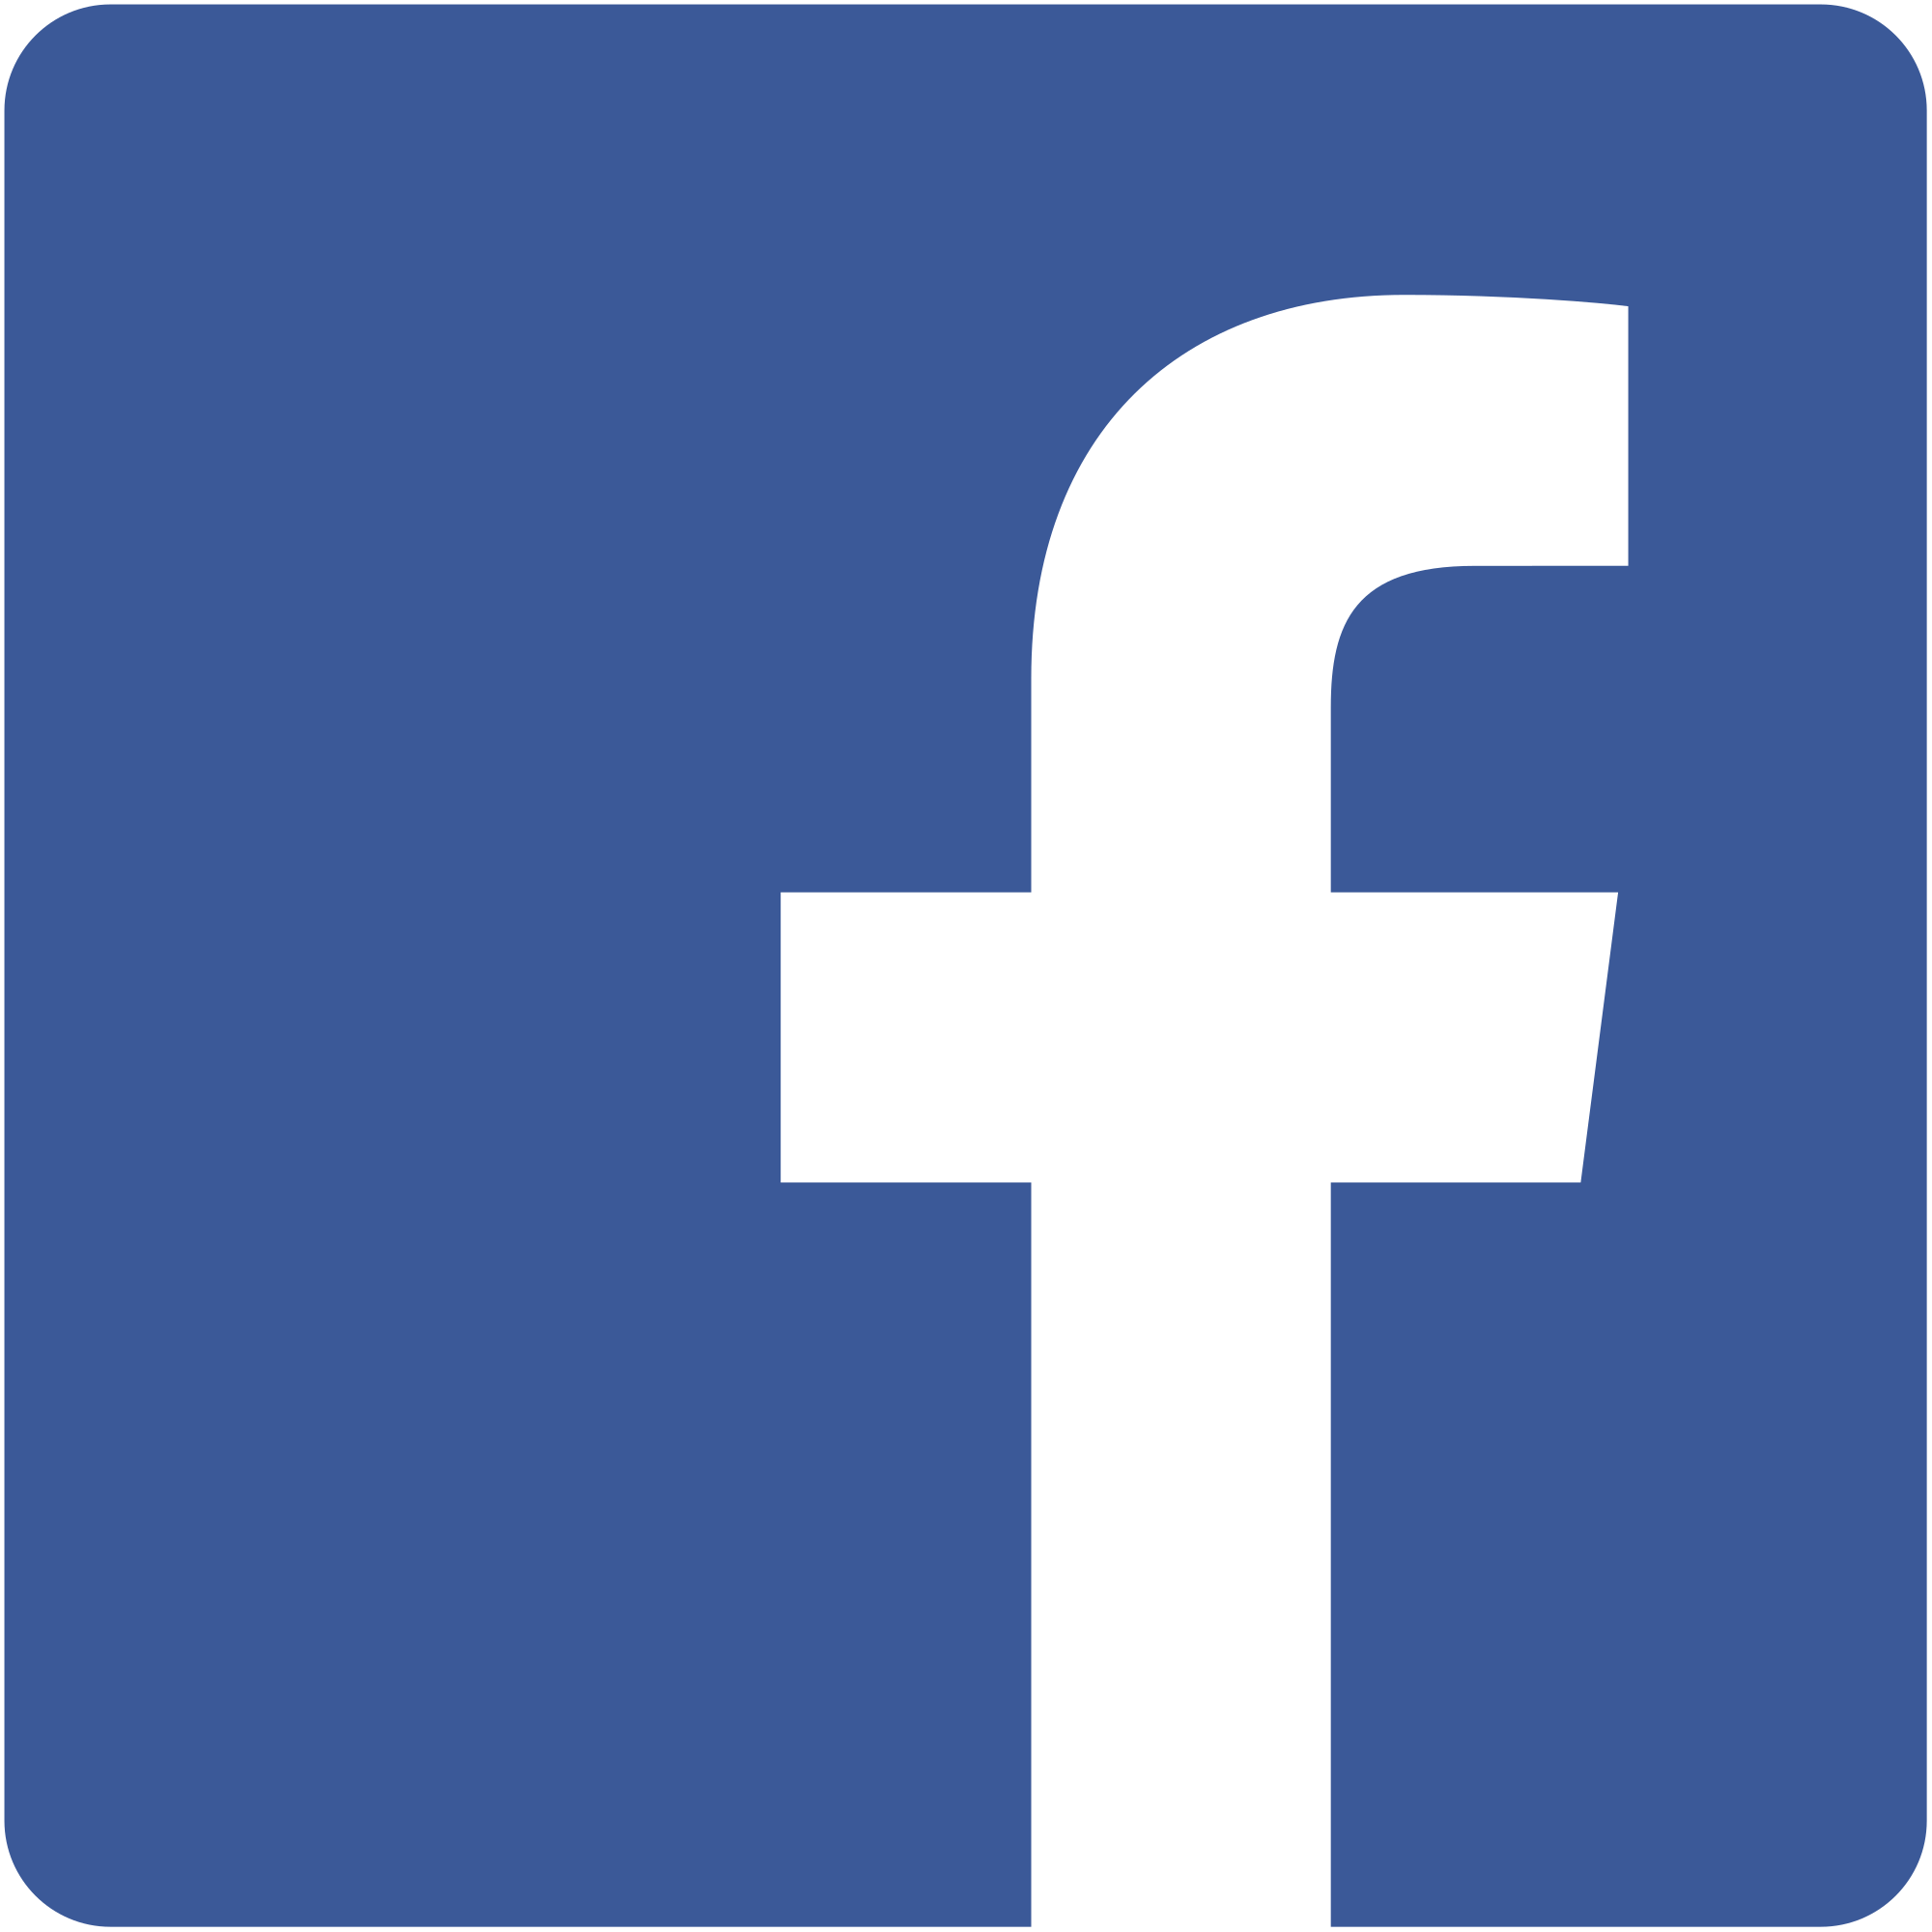 Facebook icons png transparent. File icon single path